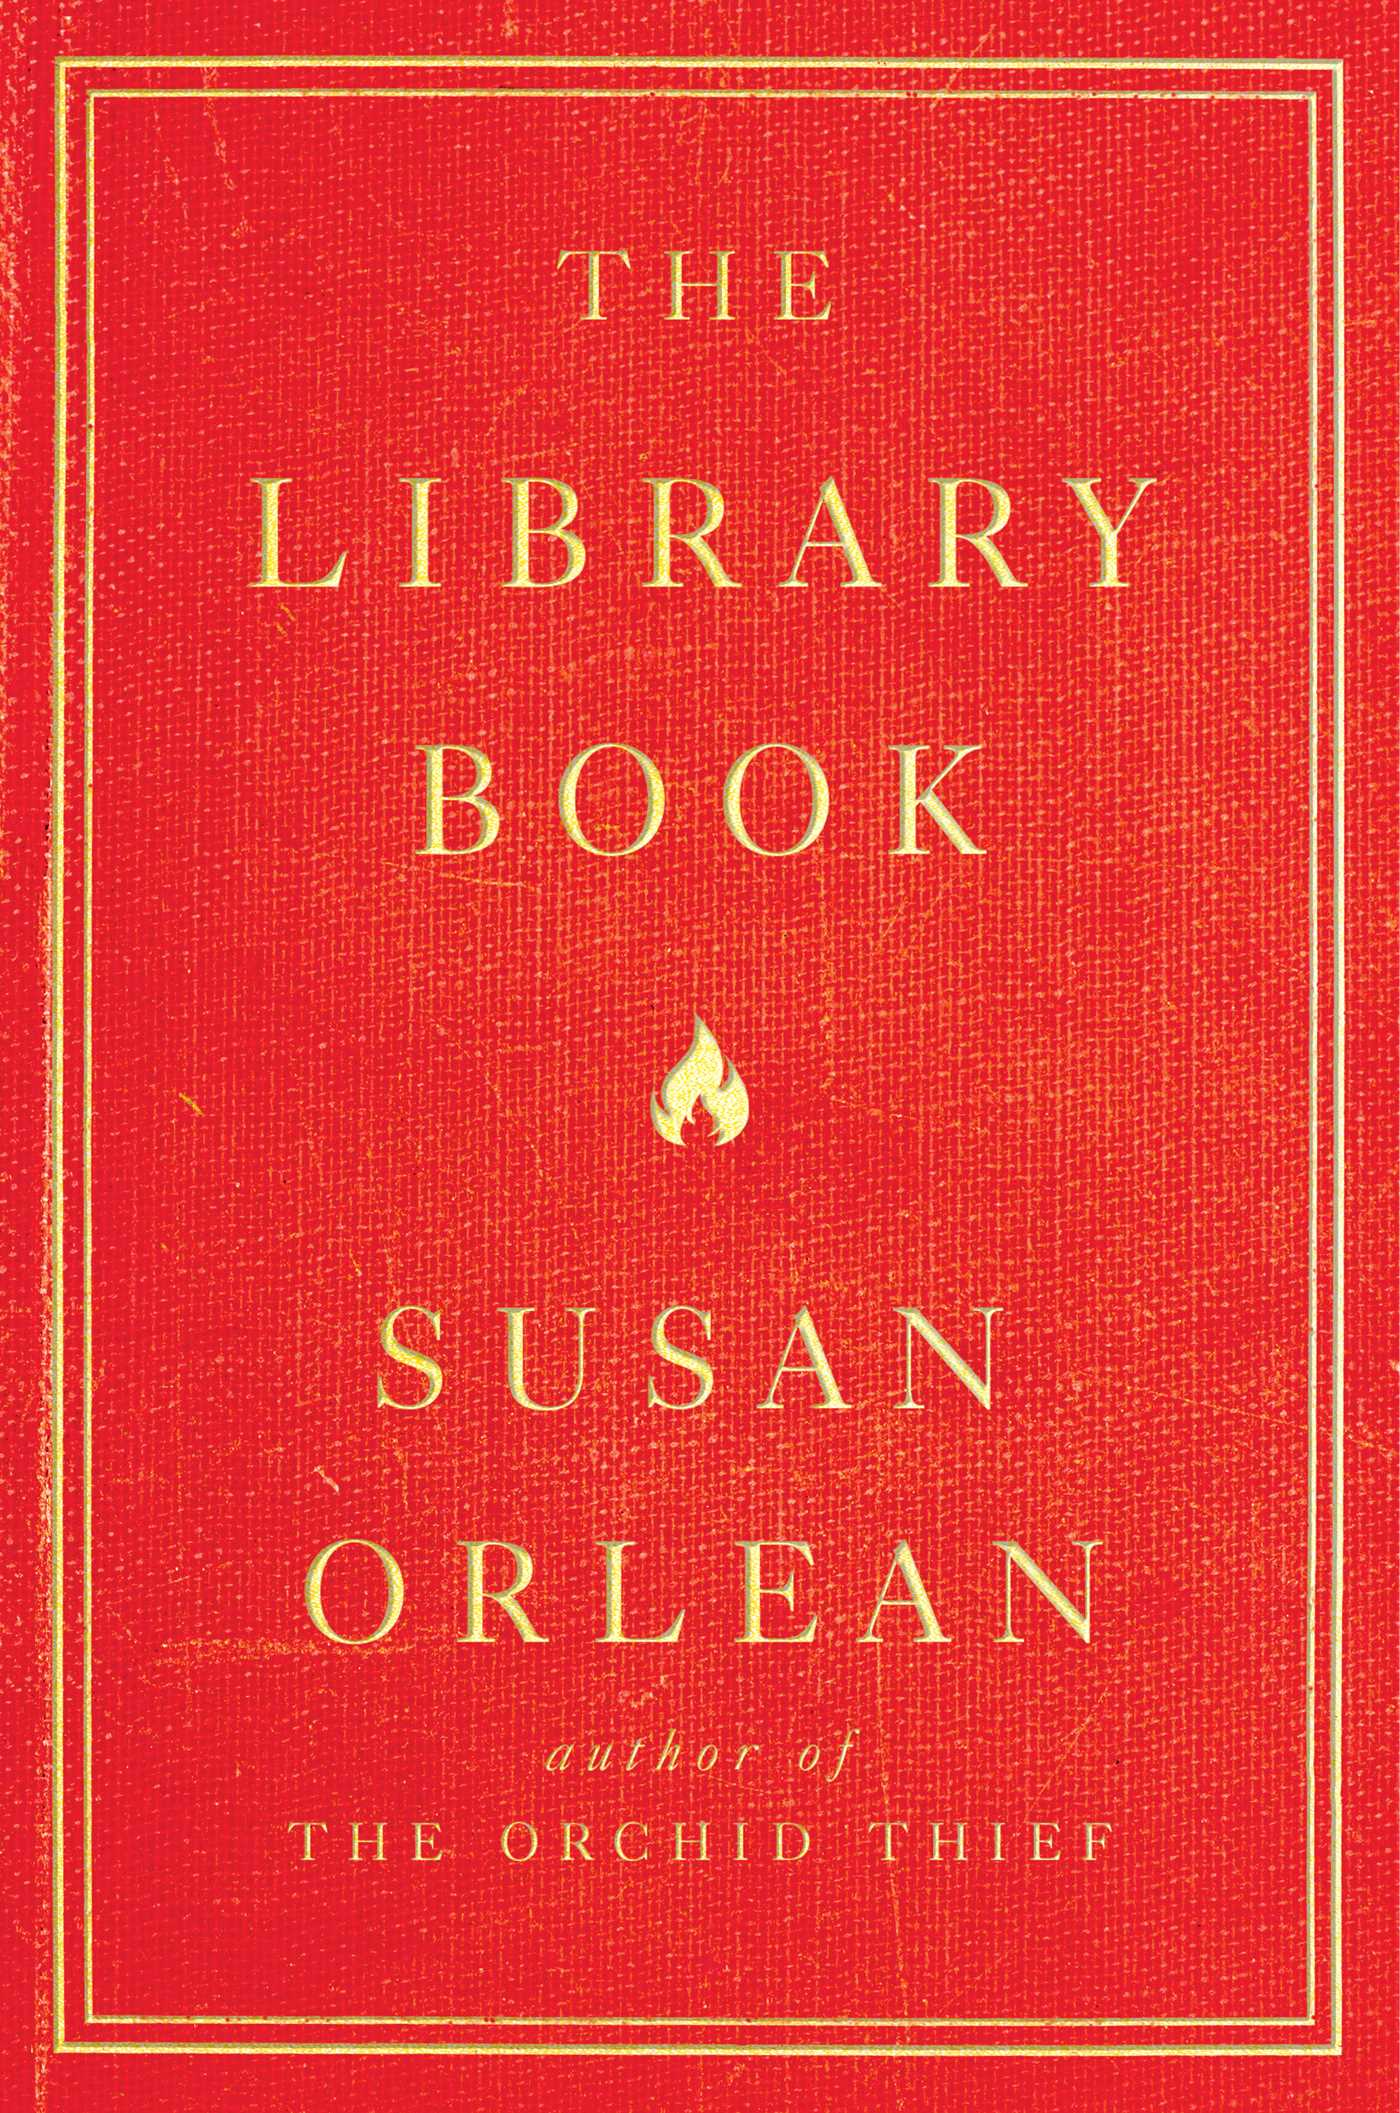 Book cover of Susan Orlean's The Library Book (red with gold lettering)